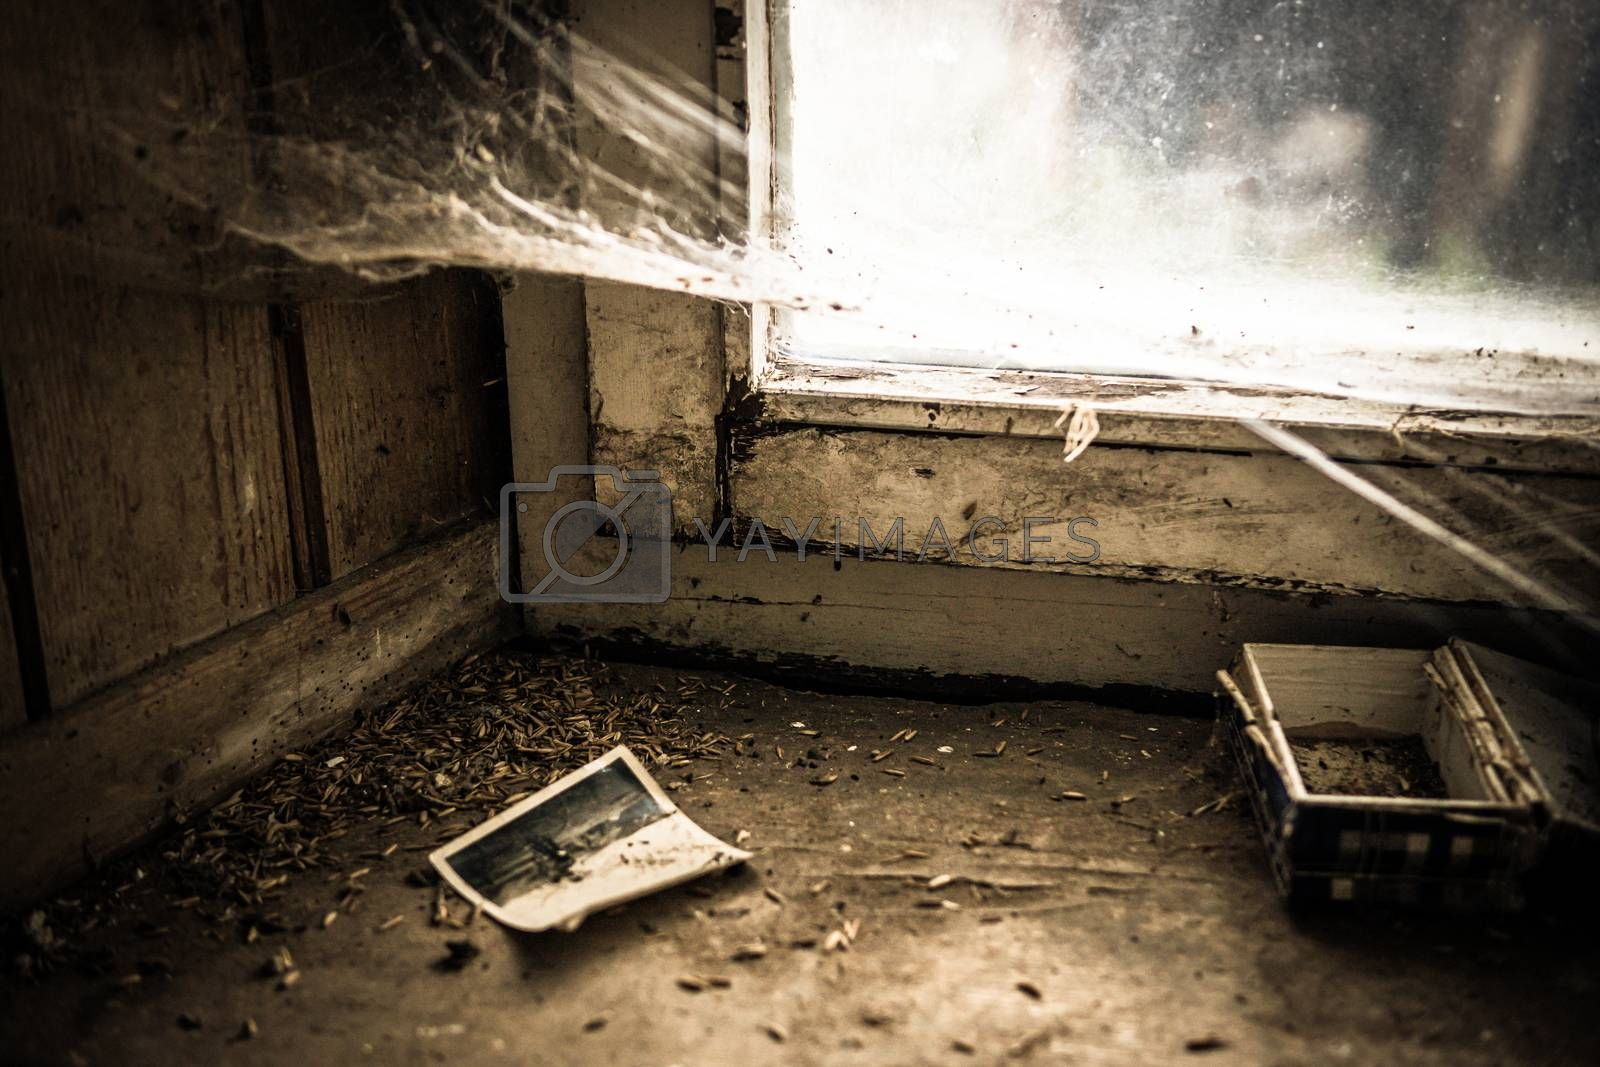 Urban exploring in an old abandoned farm house, a lost place with dirty furniture and dusty paintings